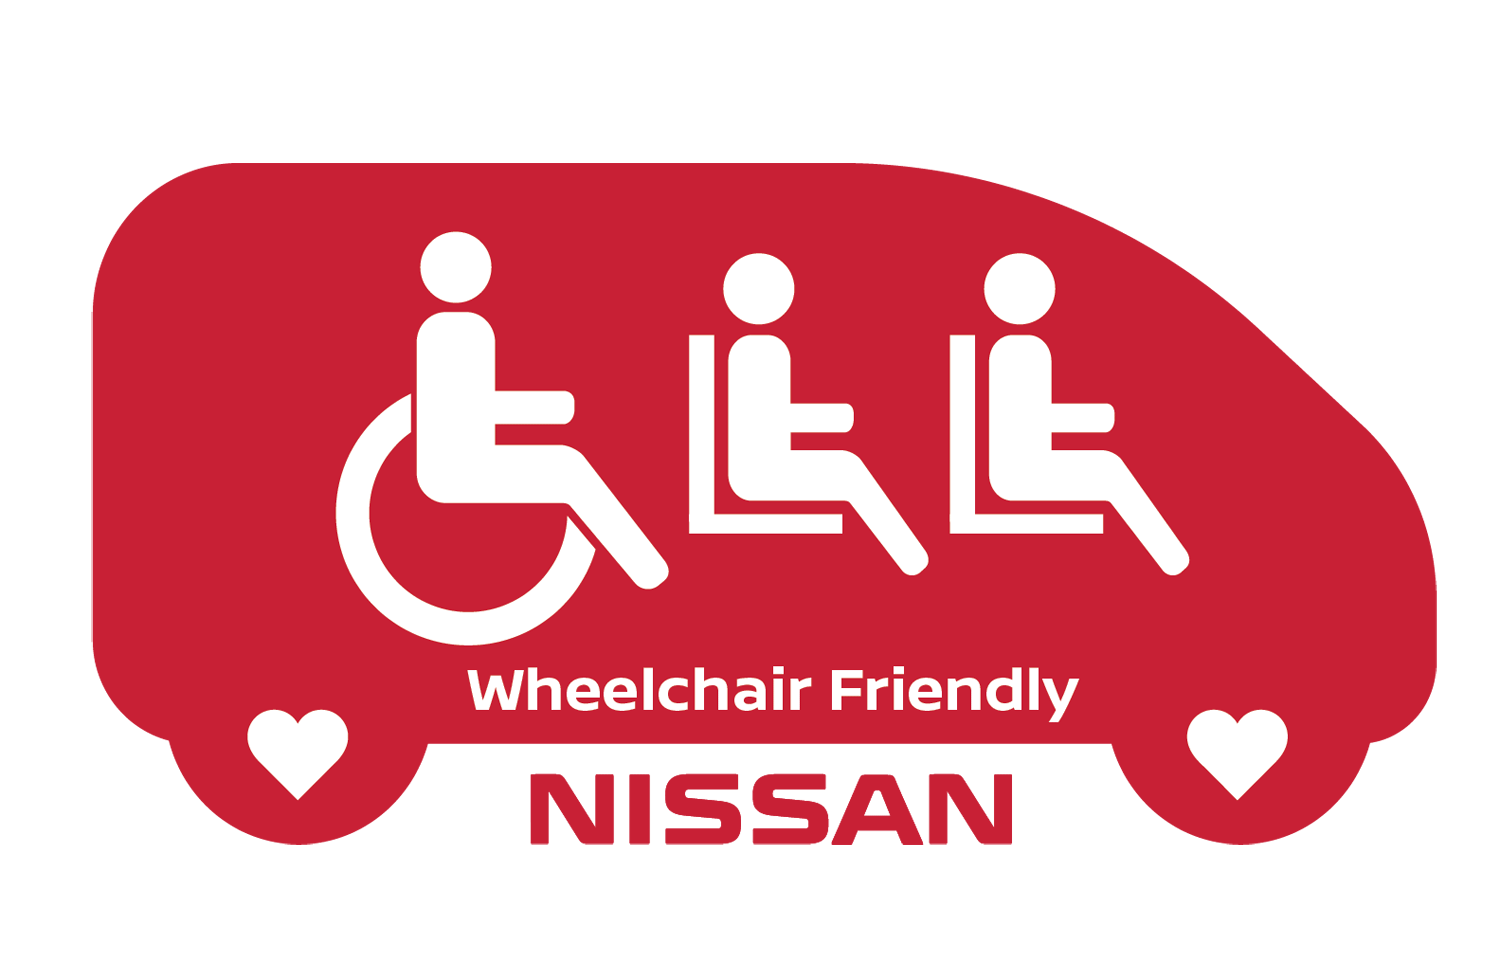 NV200 Wheelchair friendly